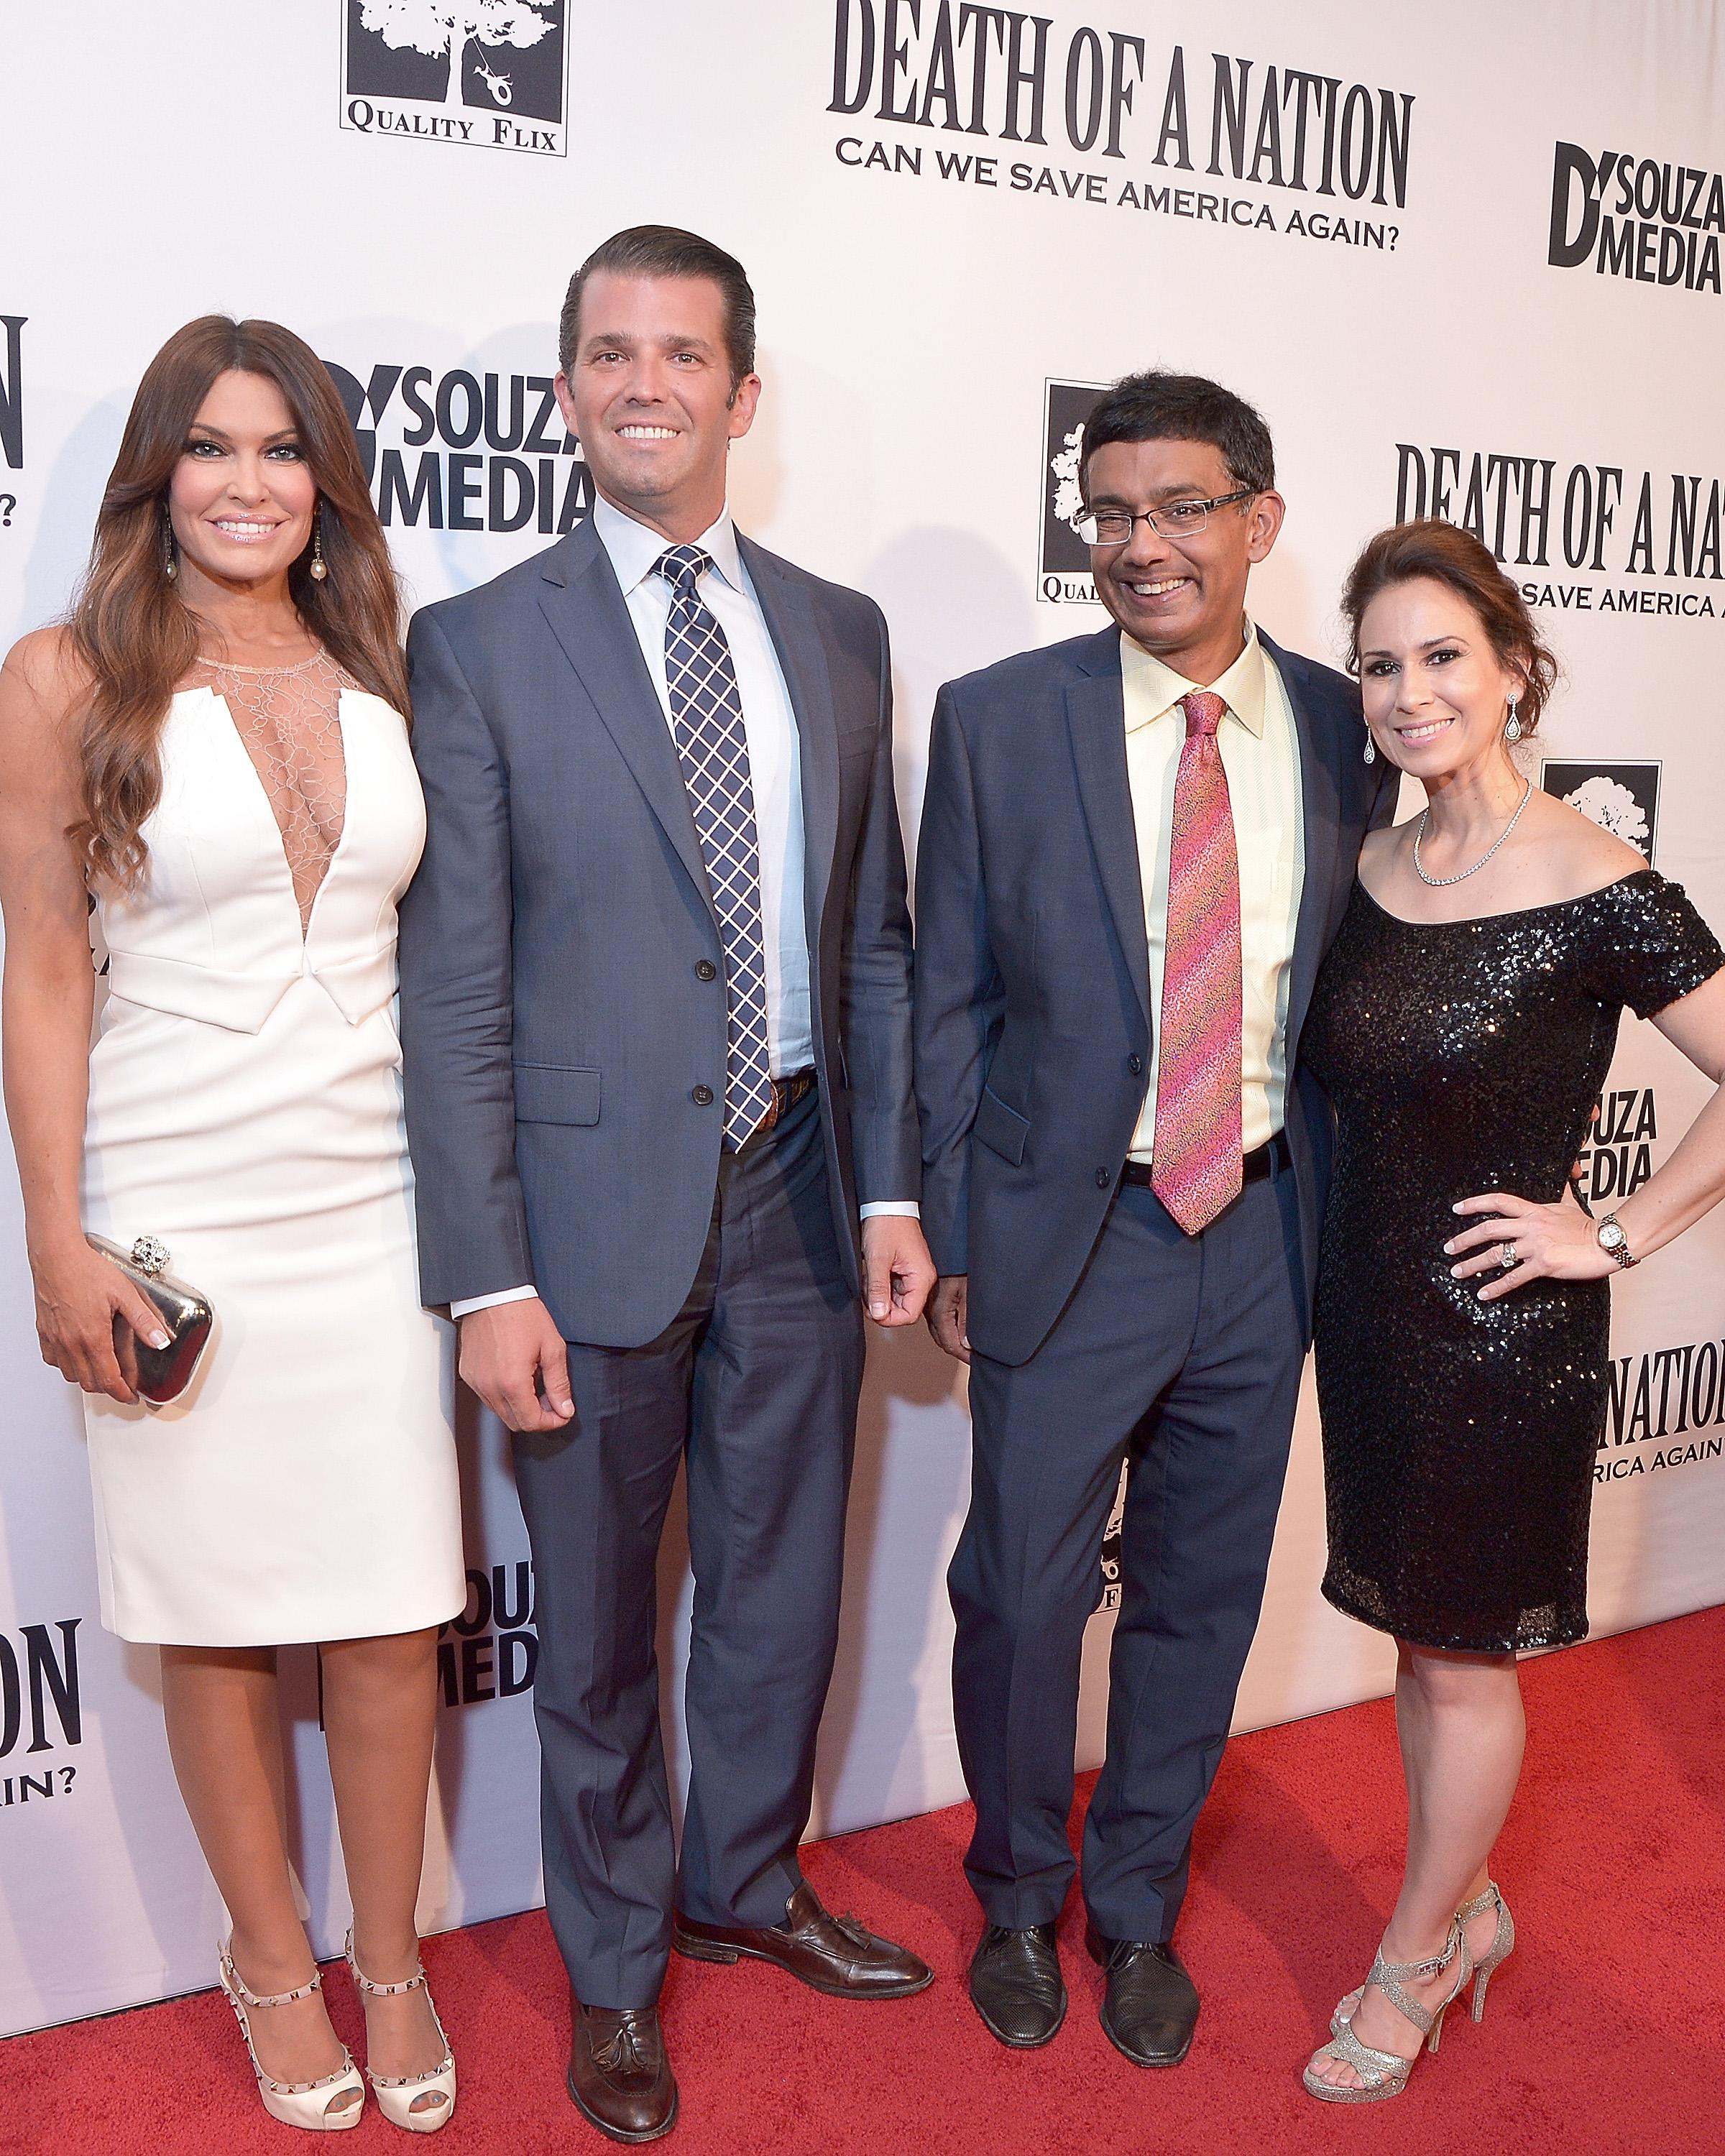 Kimberly Guilfoyle, Donald Trump Jr., Dinesh D'Souza, and Debbie Fancher attend the DC premiere of the film Death of a Nation on August 1, 2018 in Washington, D.C.